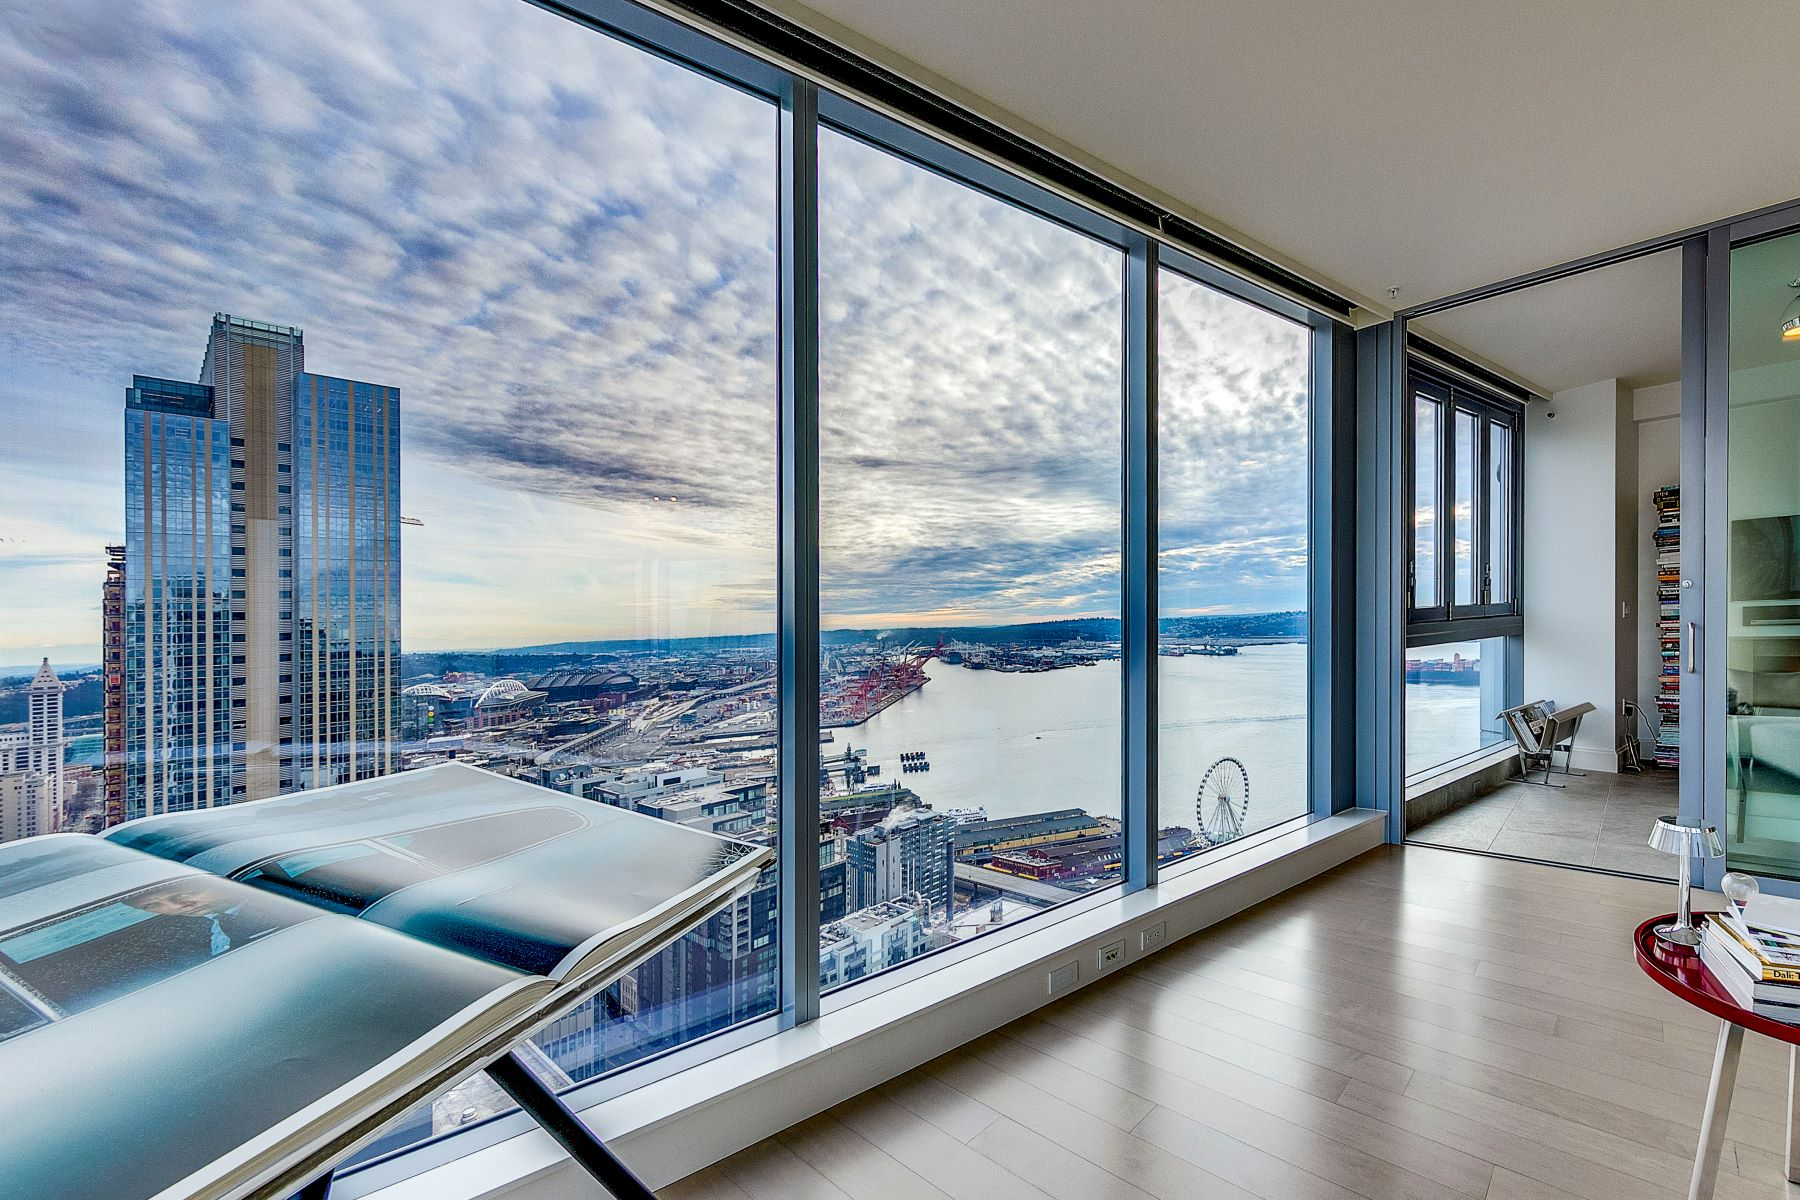 Luxury Living in 1521 1521 2nd Avenue #3402, Seattle, Washington 98101 Stati Uniti